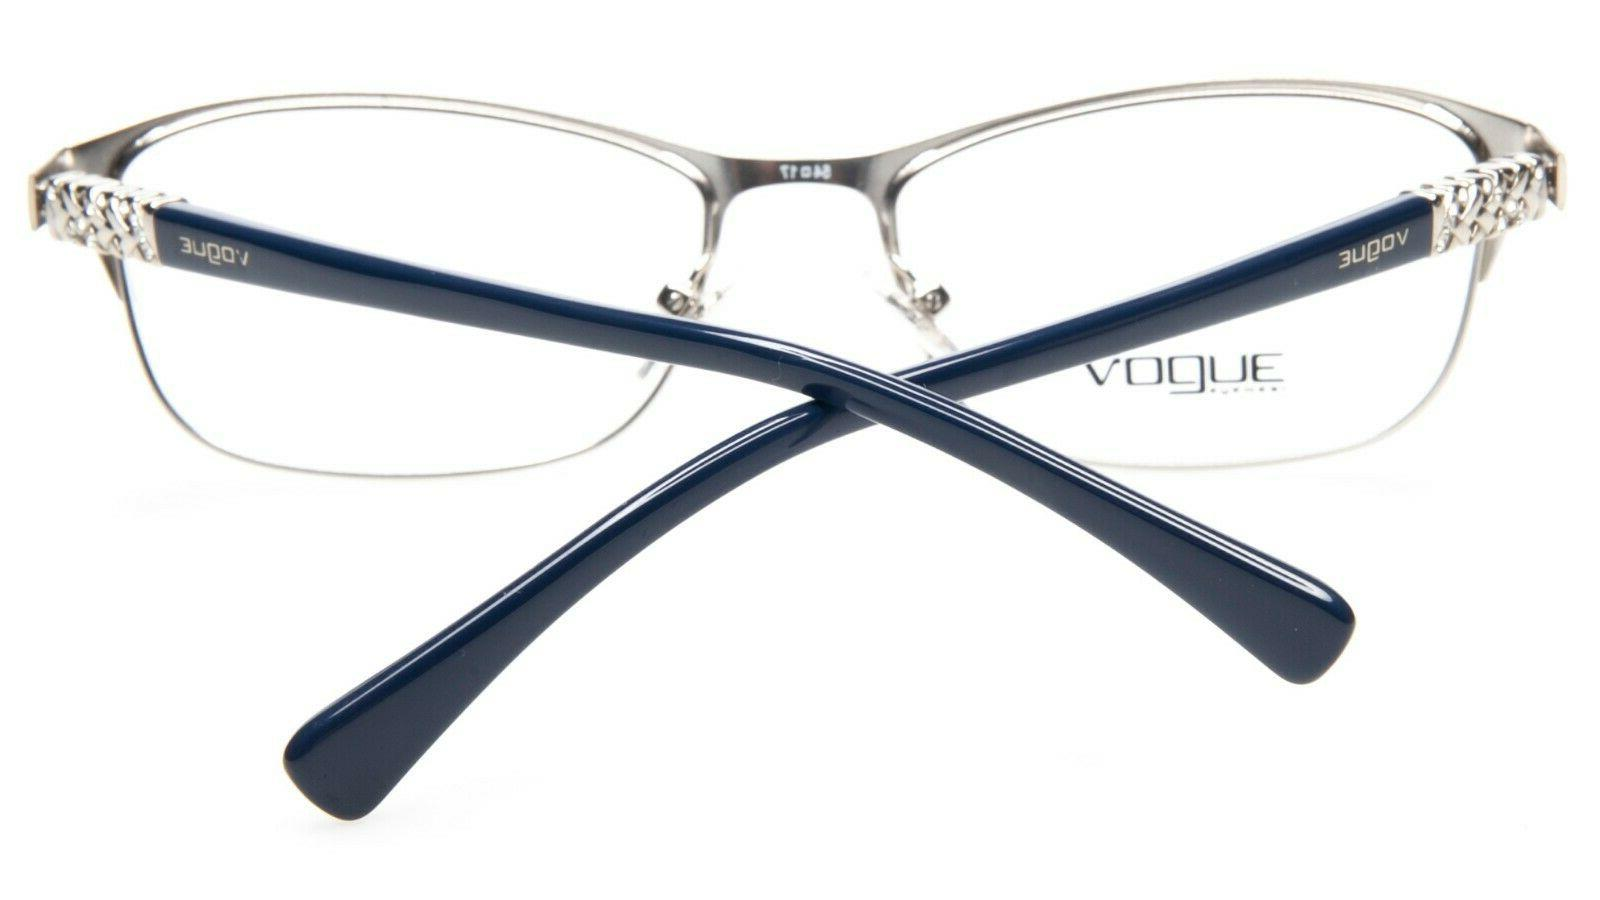 NEW VO 5051 BLUE /SILVER EYEGLASSES GLASSES 54-17-140